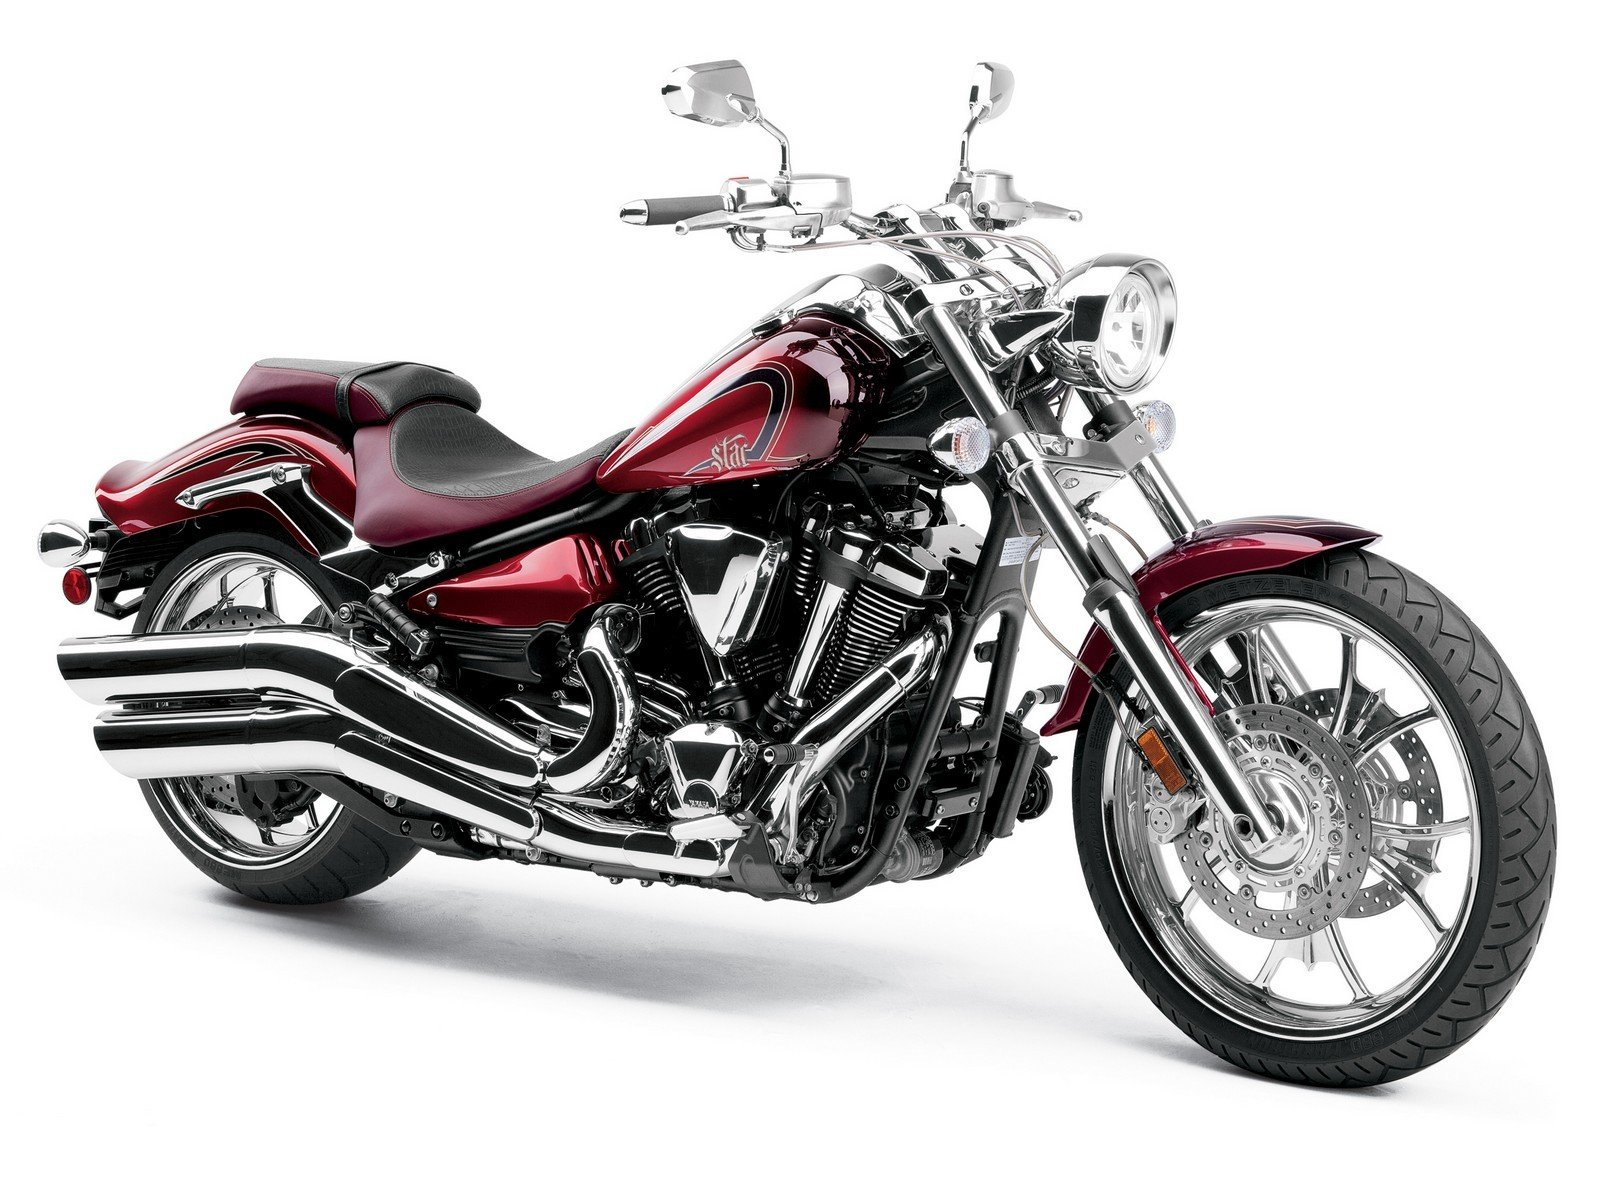 motorcycle star raider scl motorcycles speed topspeed